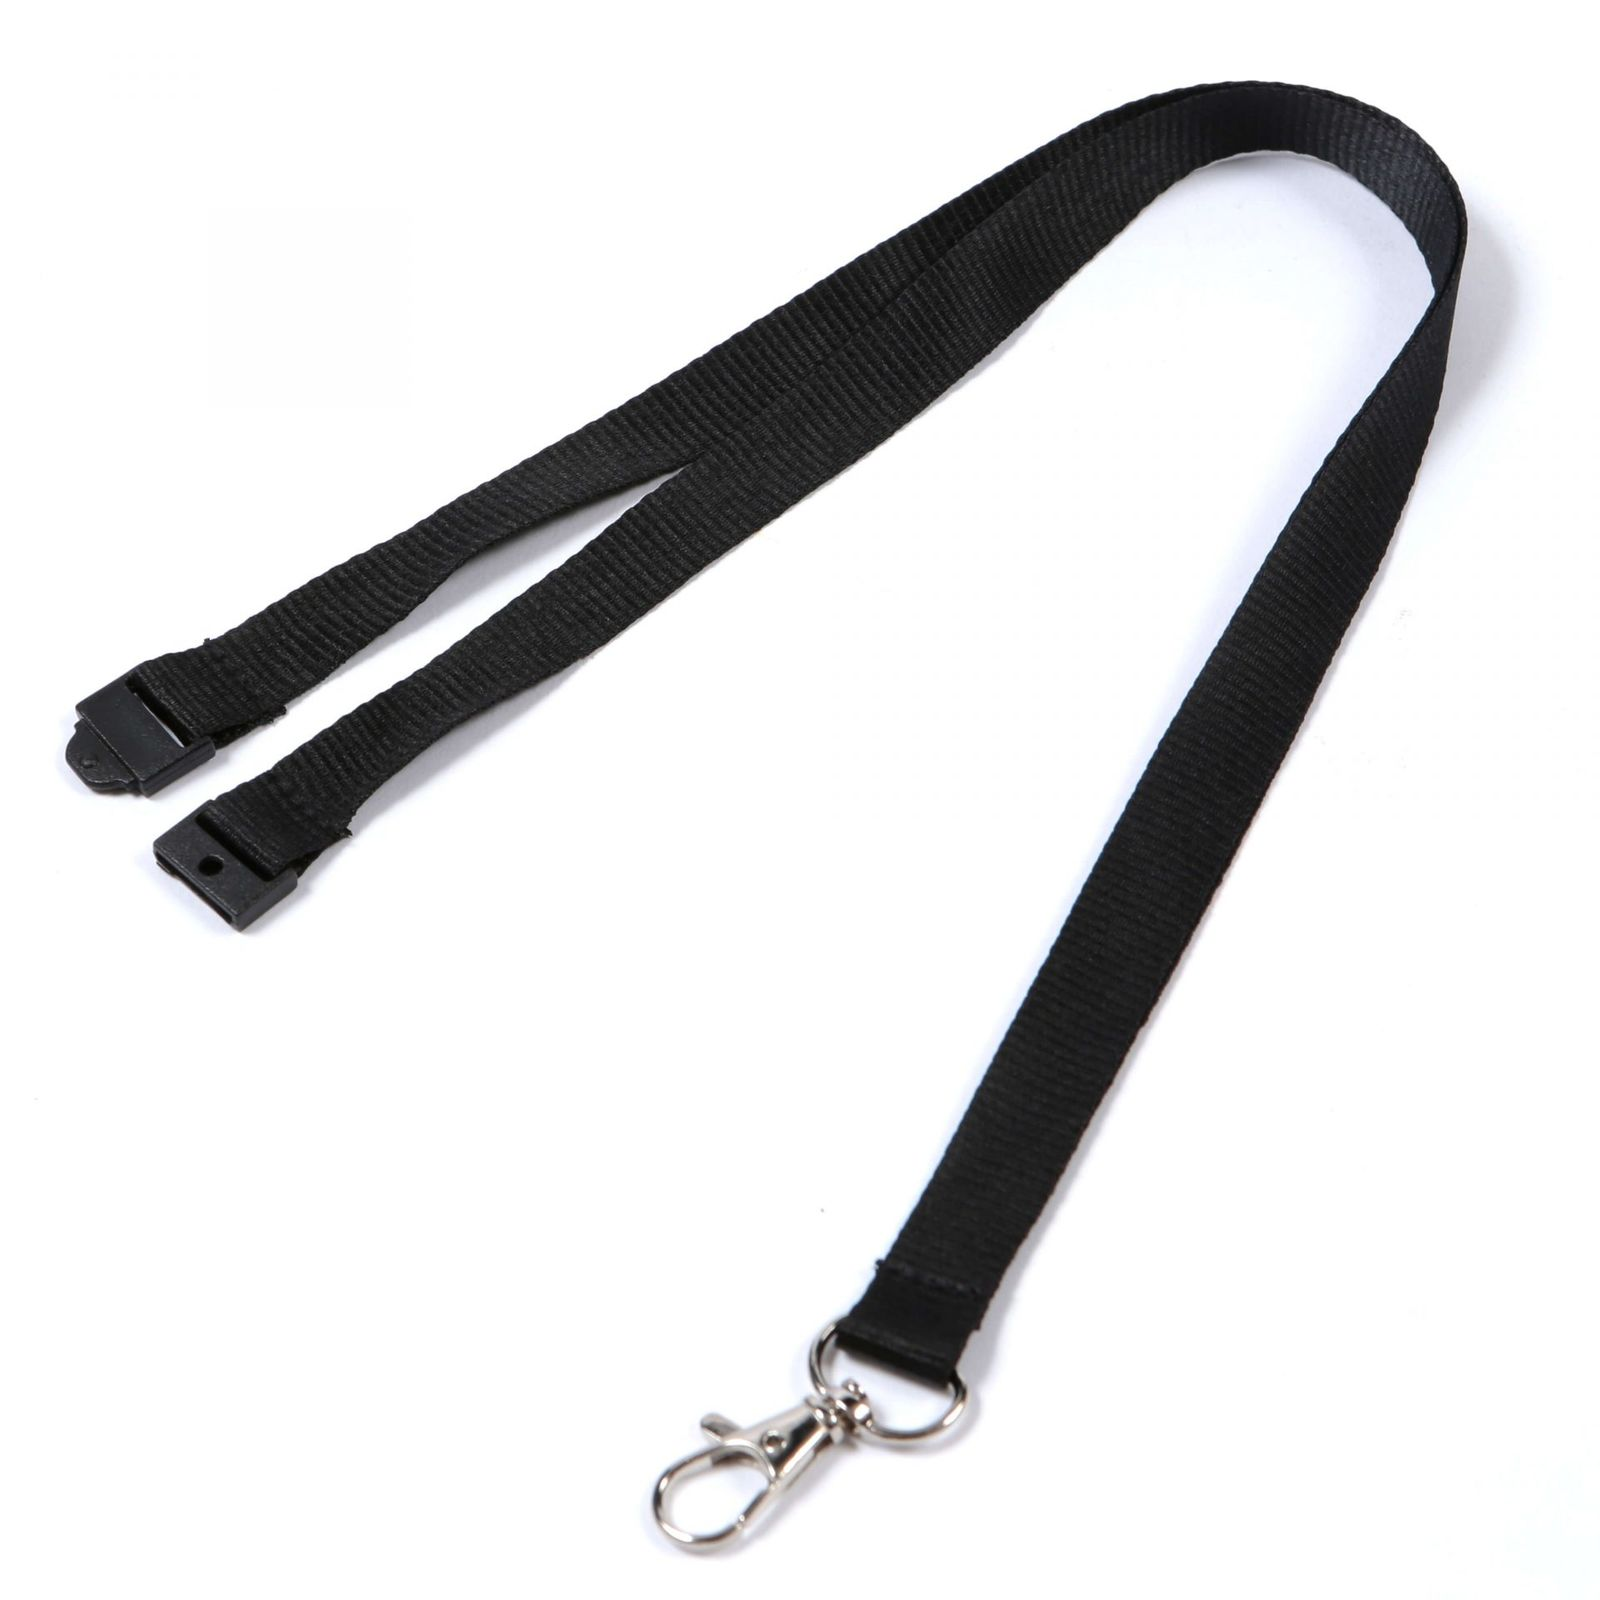 Buy Plain Black Lanyards on Lanyards Direct Today!